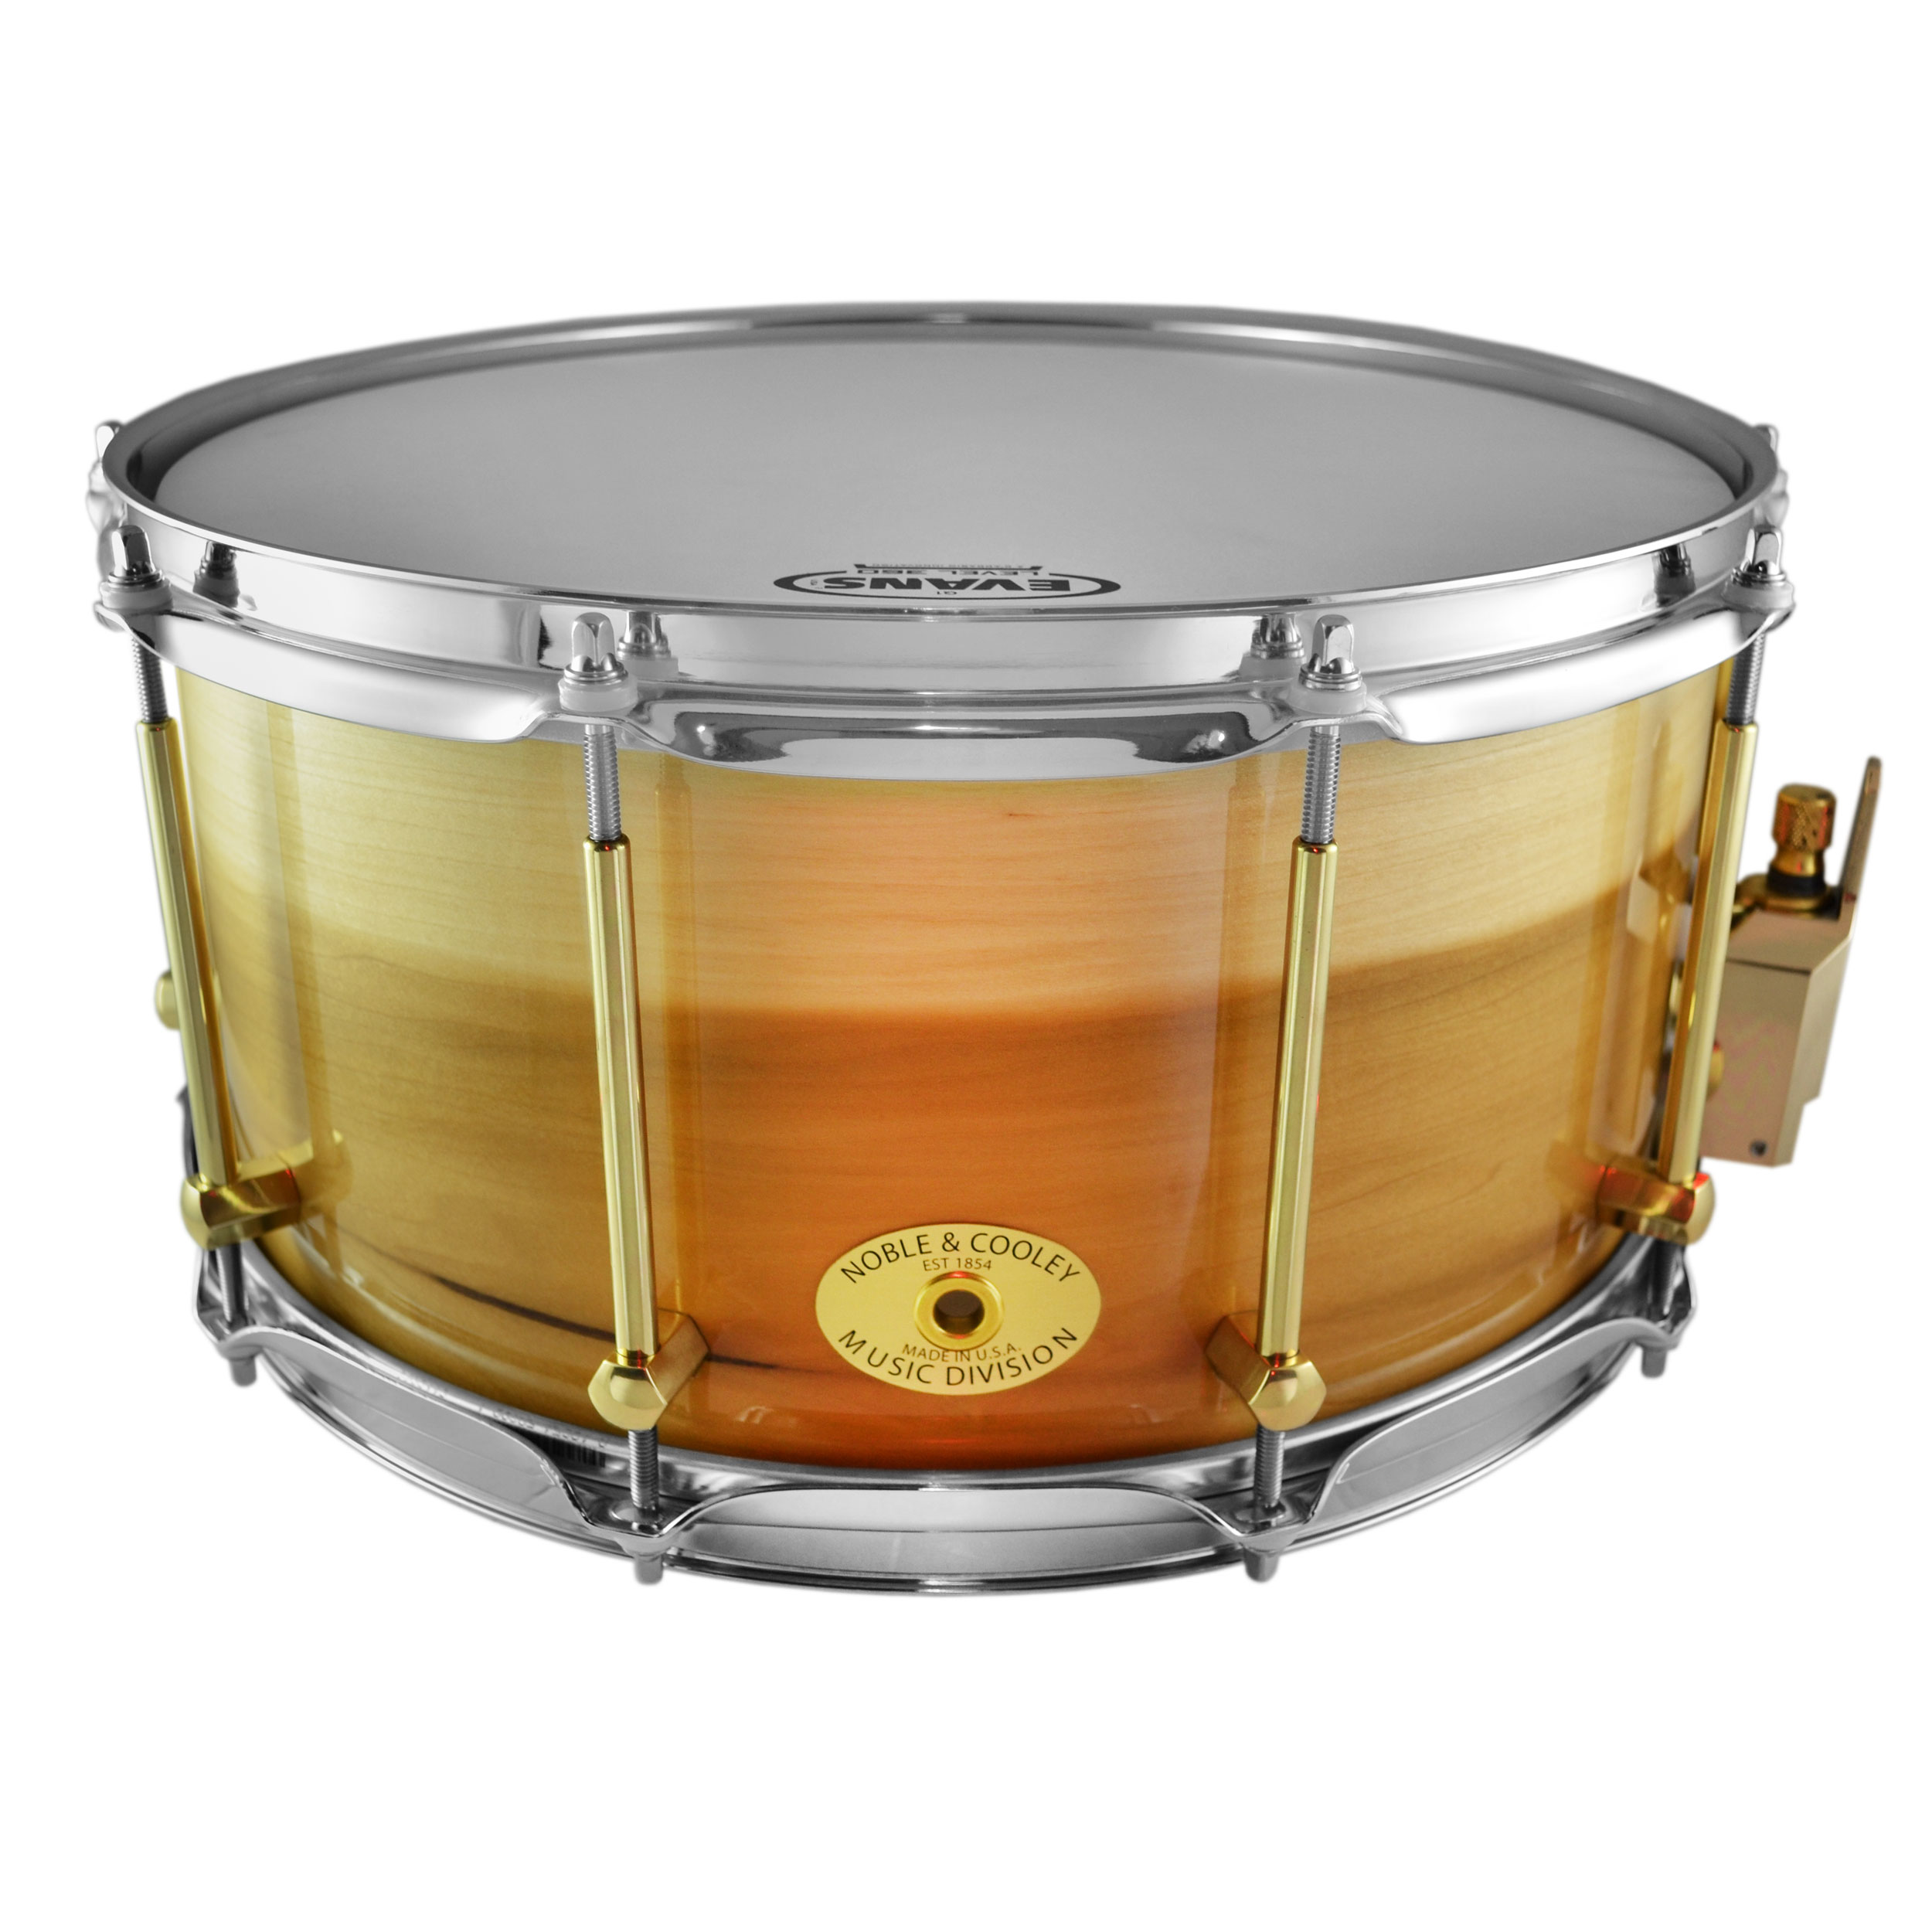 "Noble & Cooley 7"" x 14"" Classic Solid Shell Tulip Snare Drum in Clear Gloss"